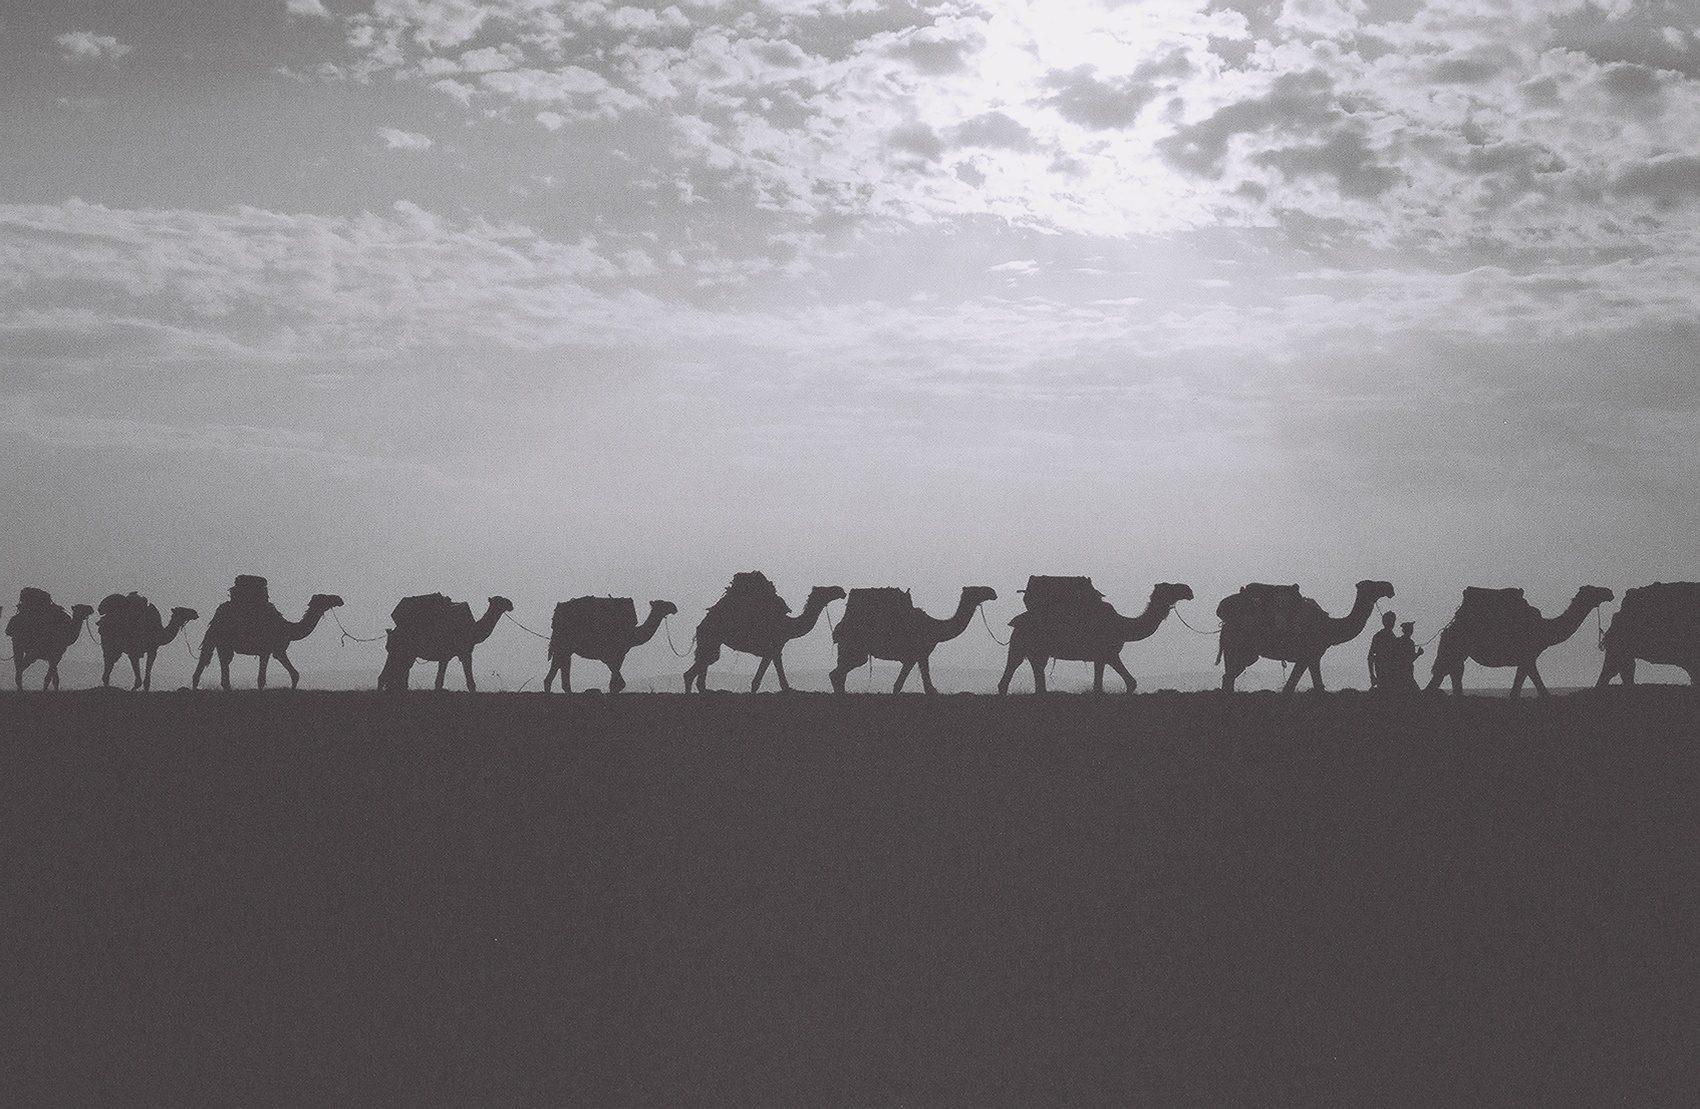 Camels making their way across the land single-file.